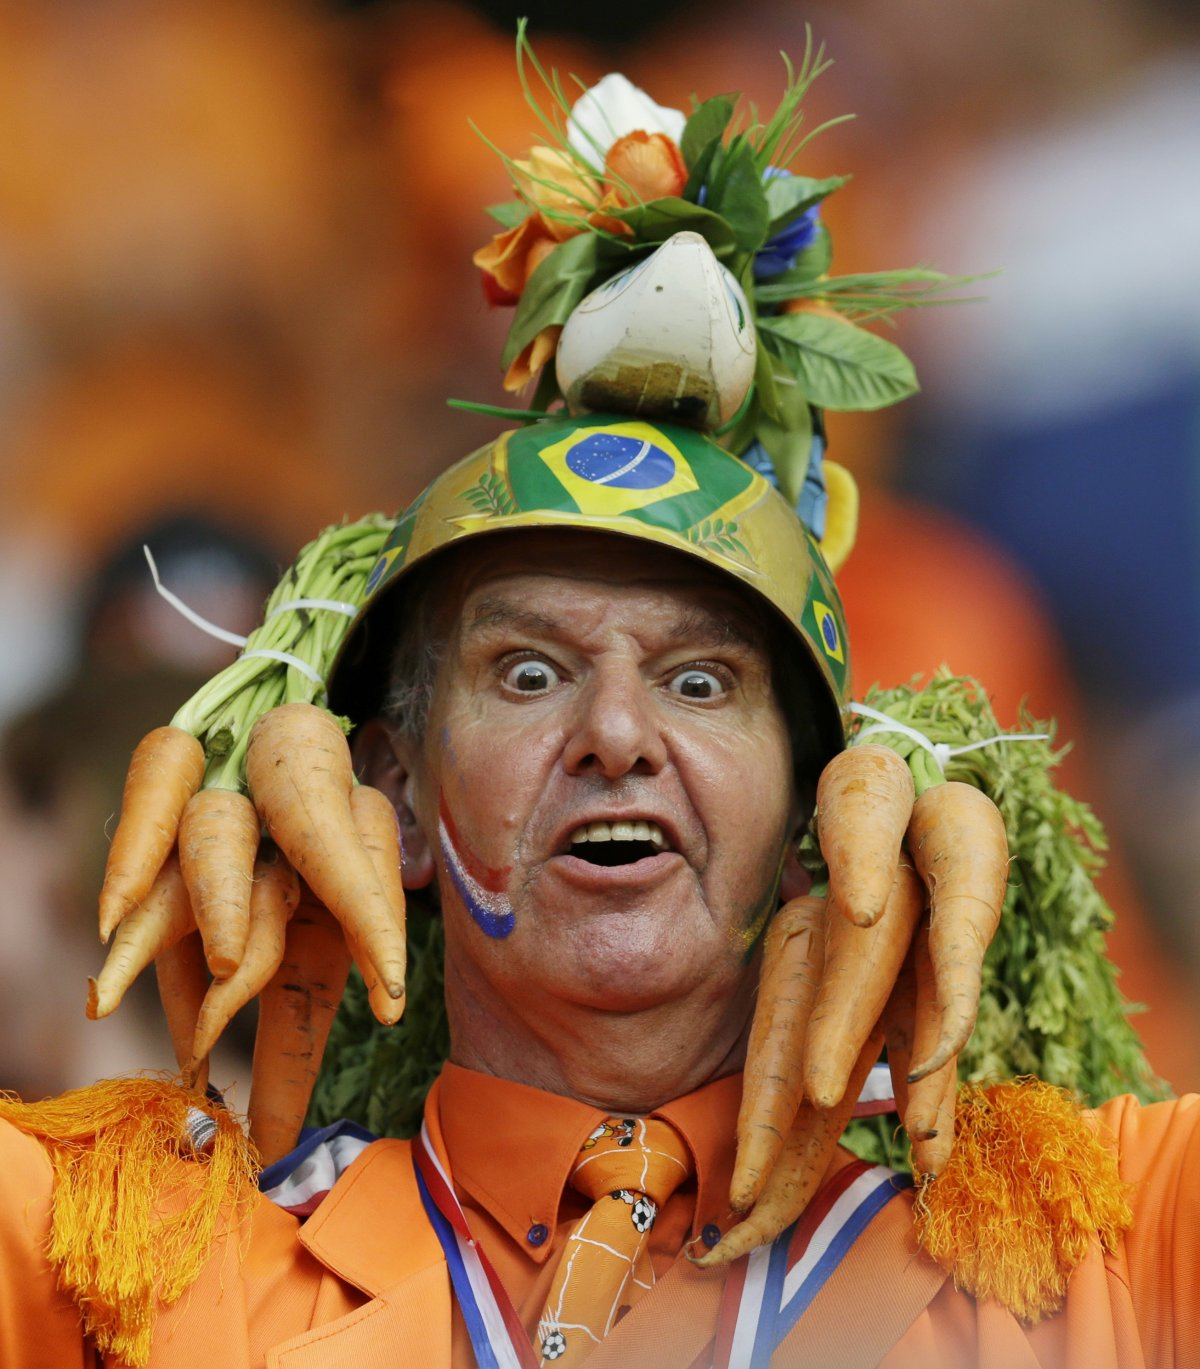 2 dutch crazy carot hat guy - craziest fans at 2014 fifa world cup